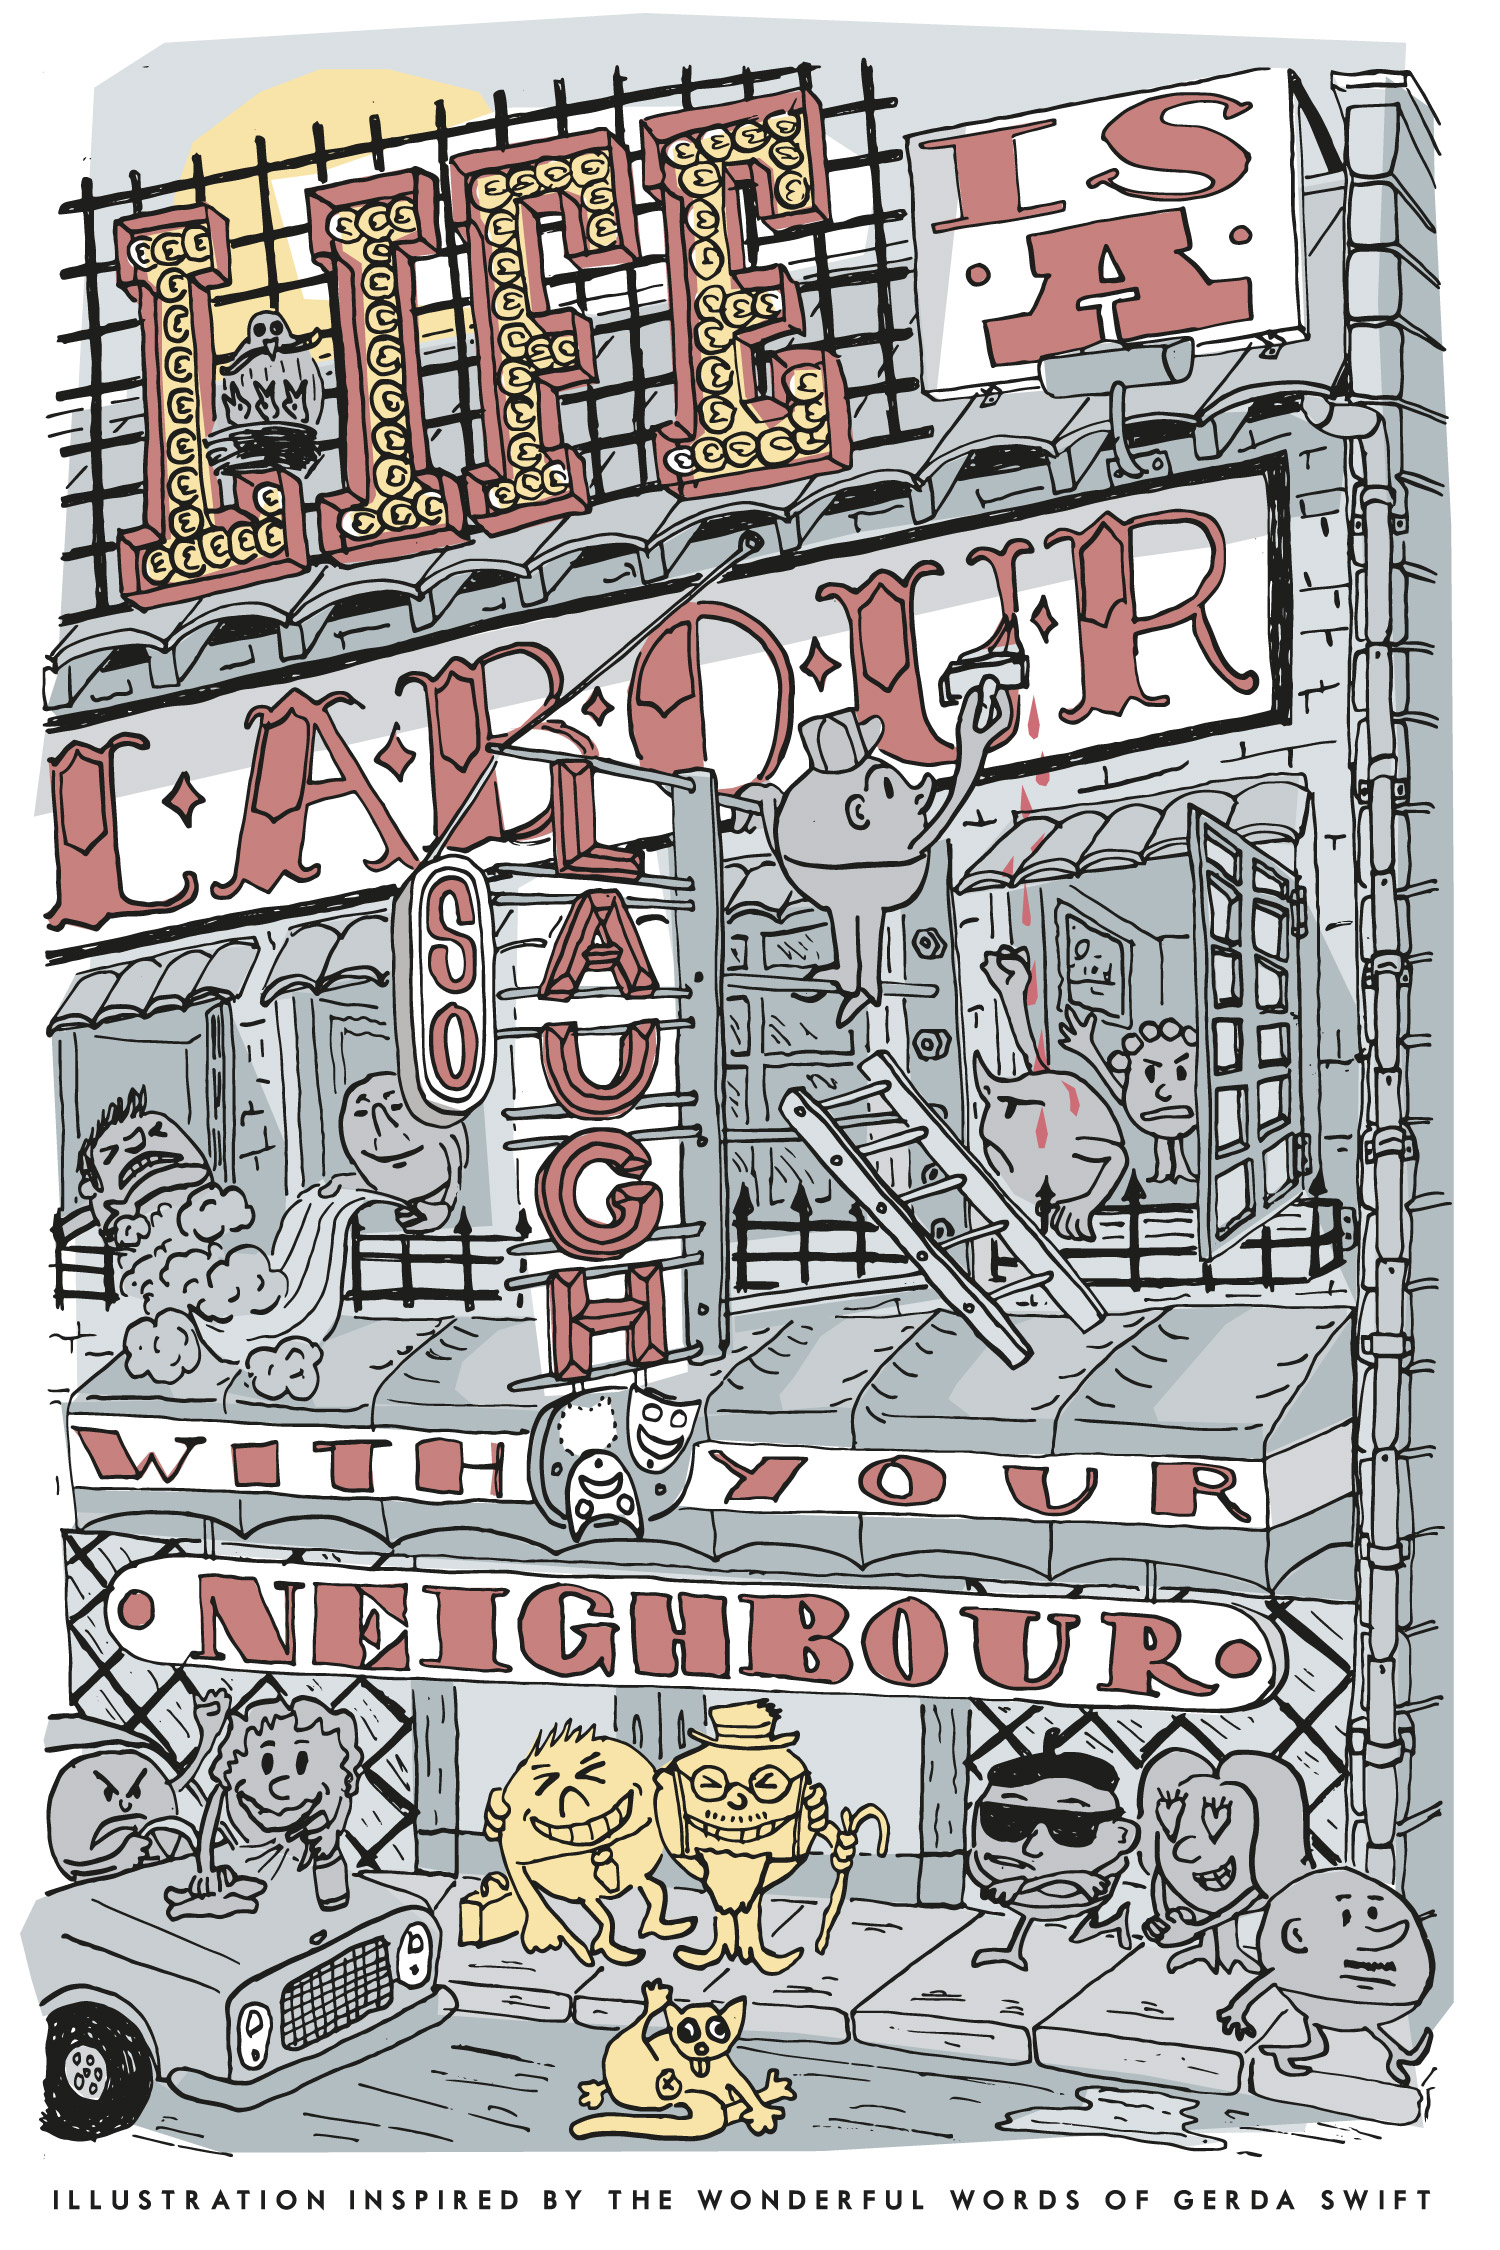 'Life Is A Labour So Laugh With Your Neighbour' poster by Jack Comer